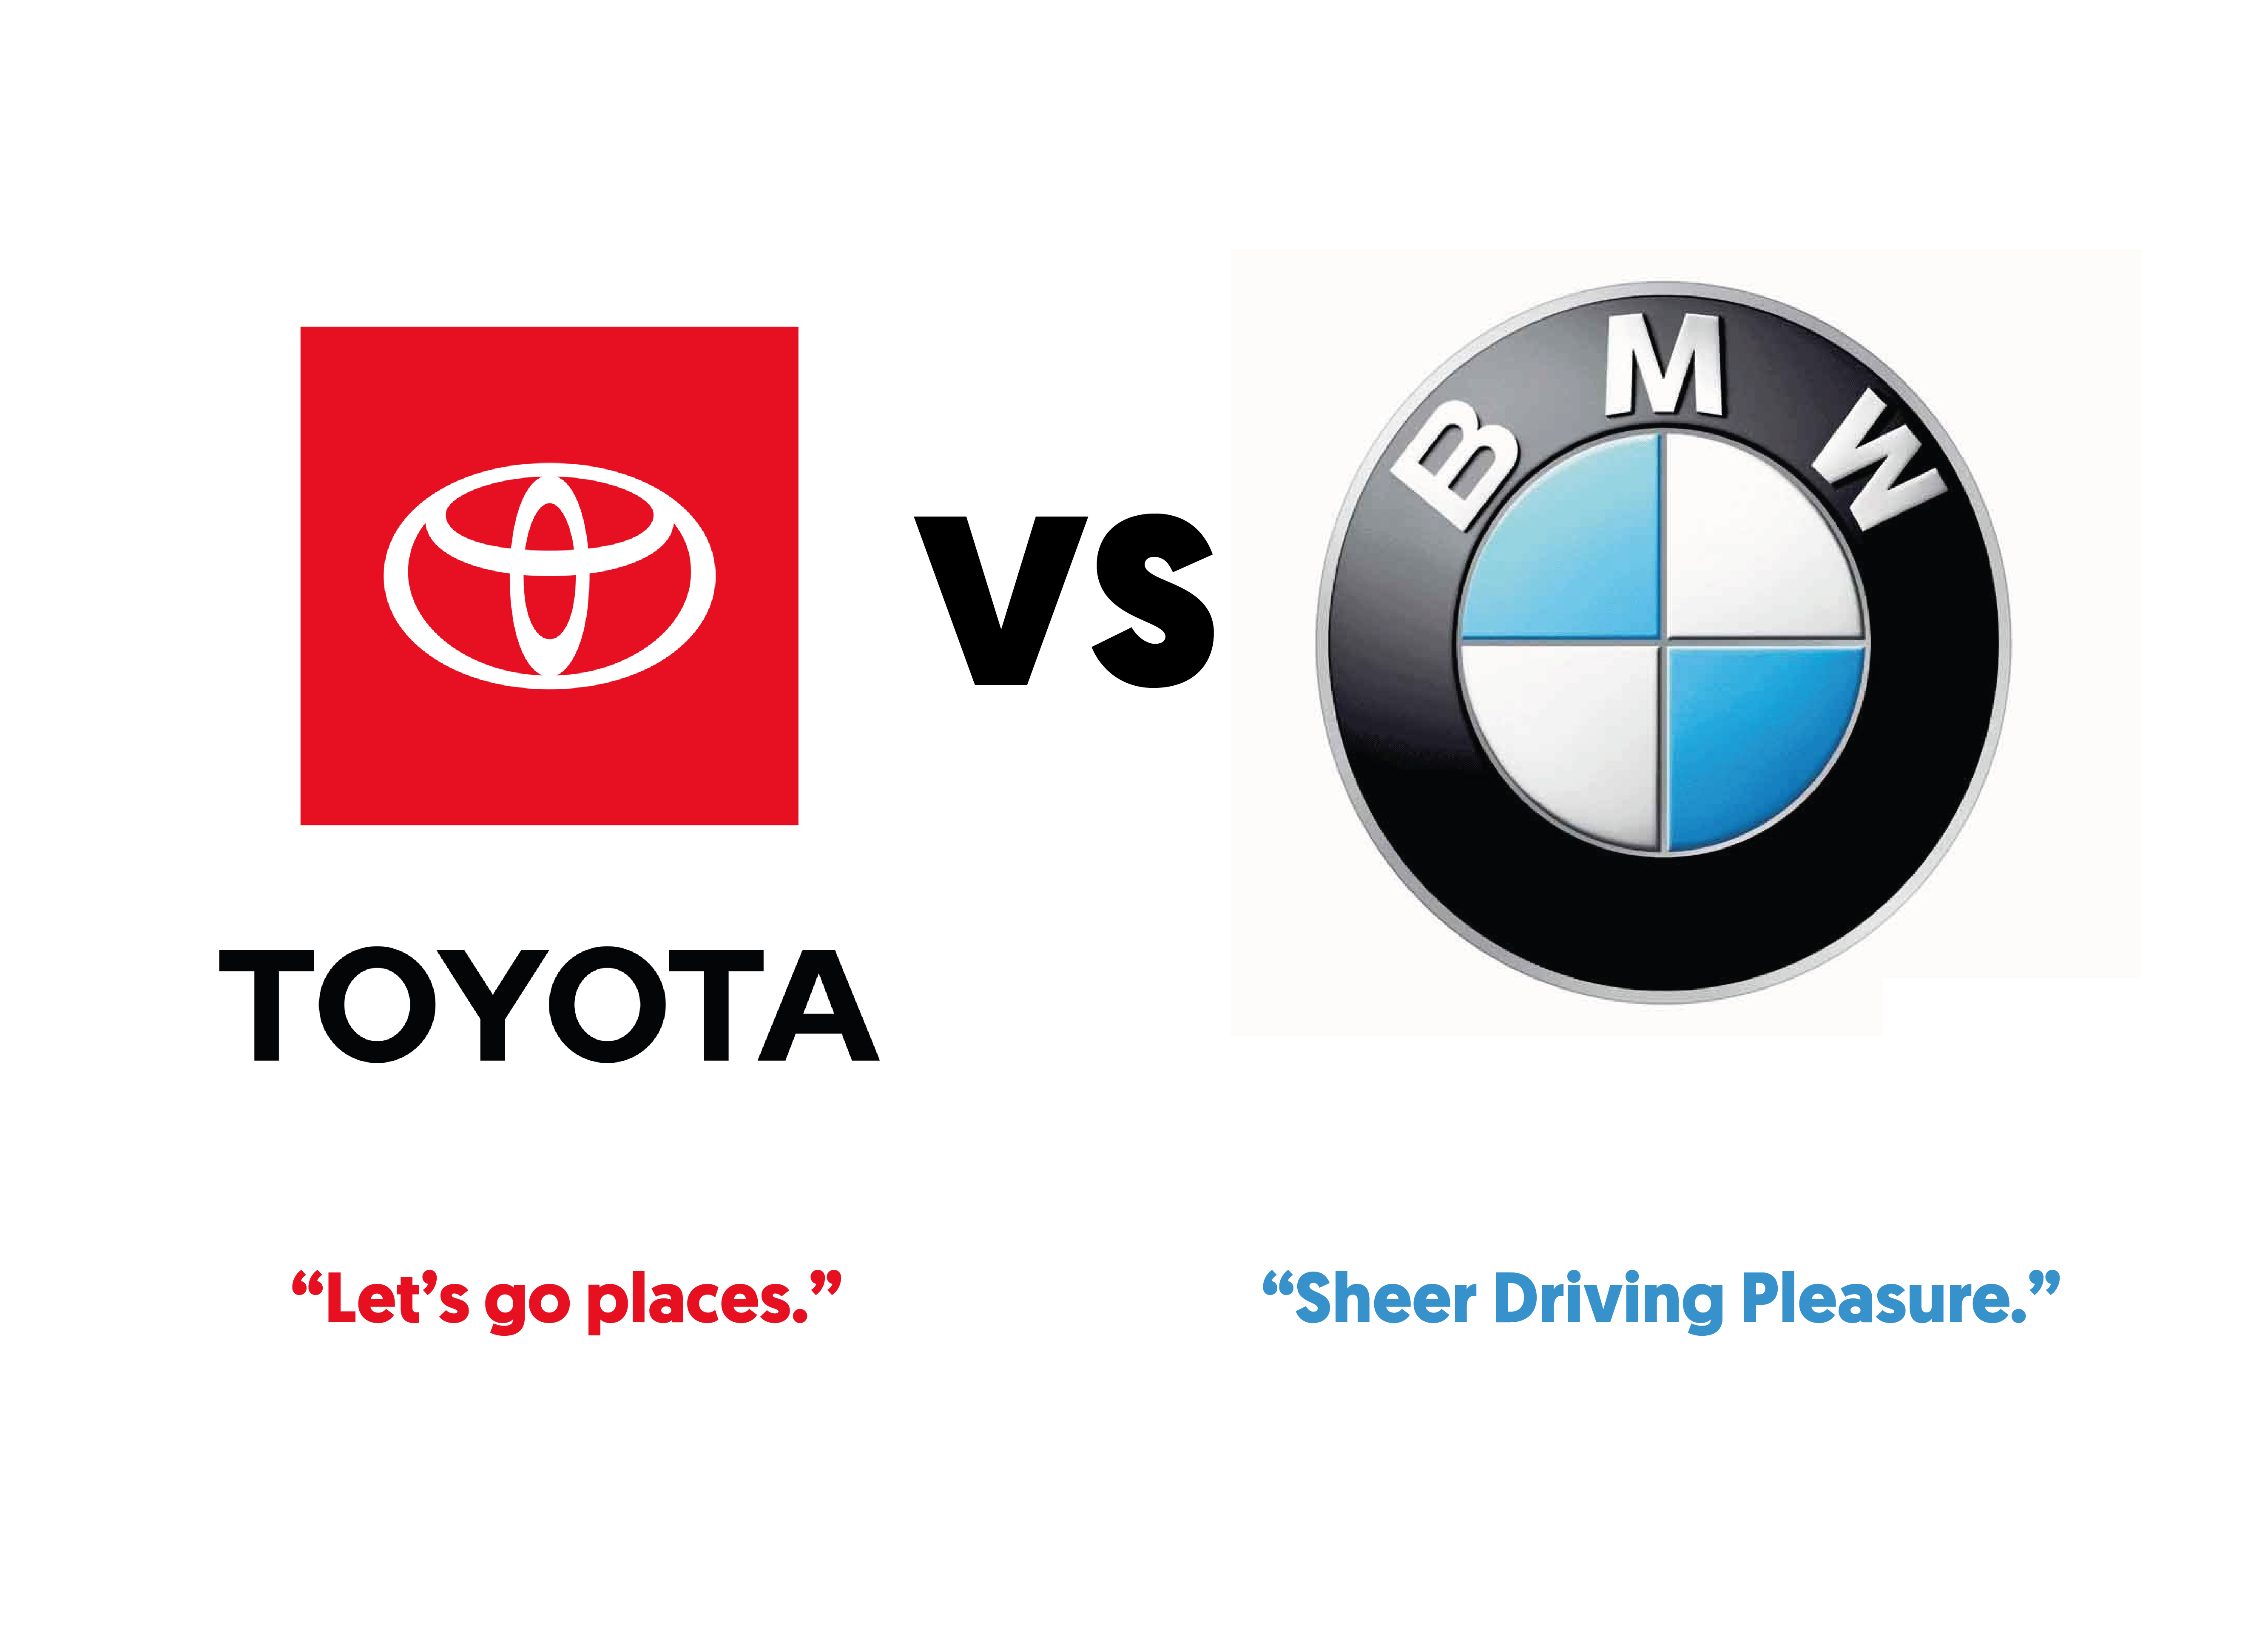 """The Toyota logo with the tagline """"Let's go places"""" under it vs the BMW logo with it's tagline """"Sheer driving pleasure"""" under it."""